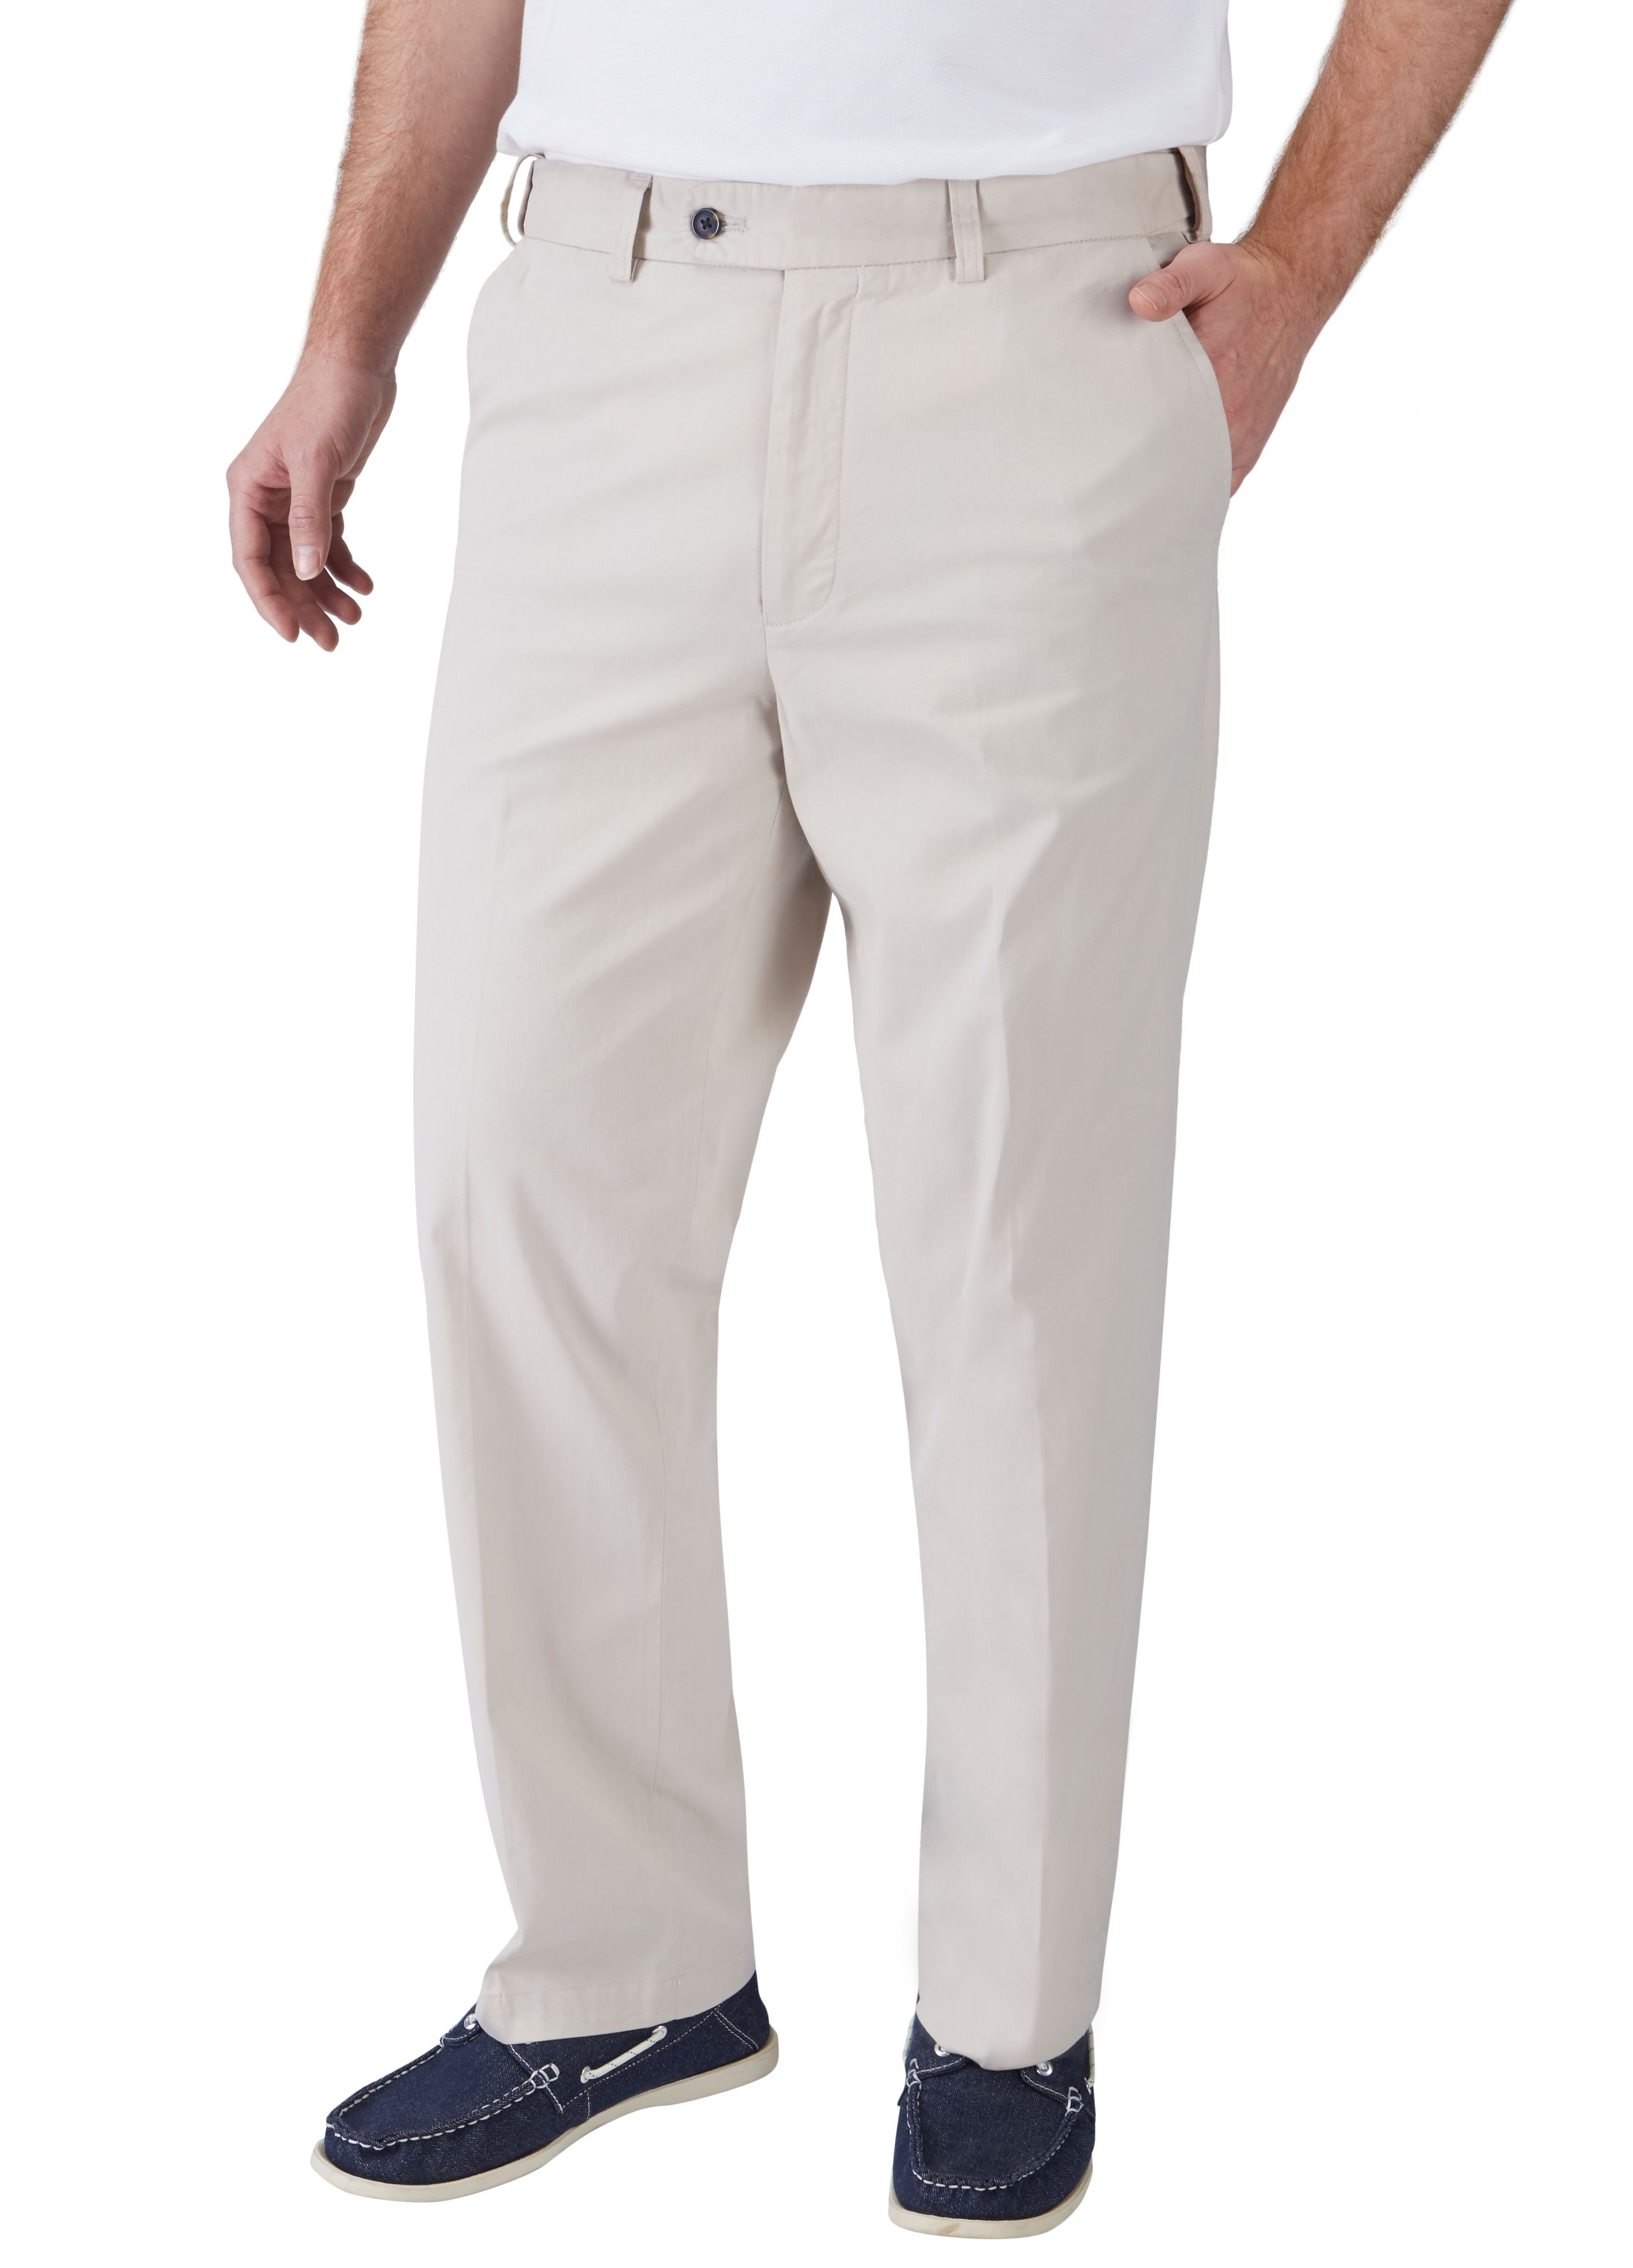 New albany chino trousers